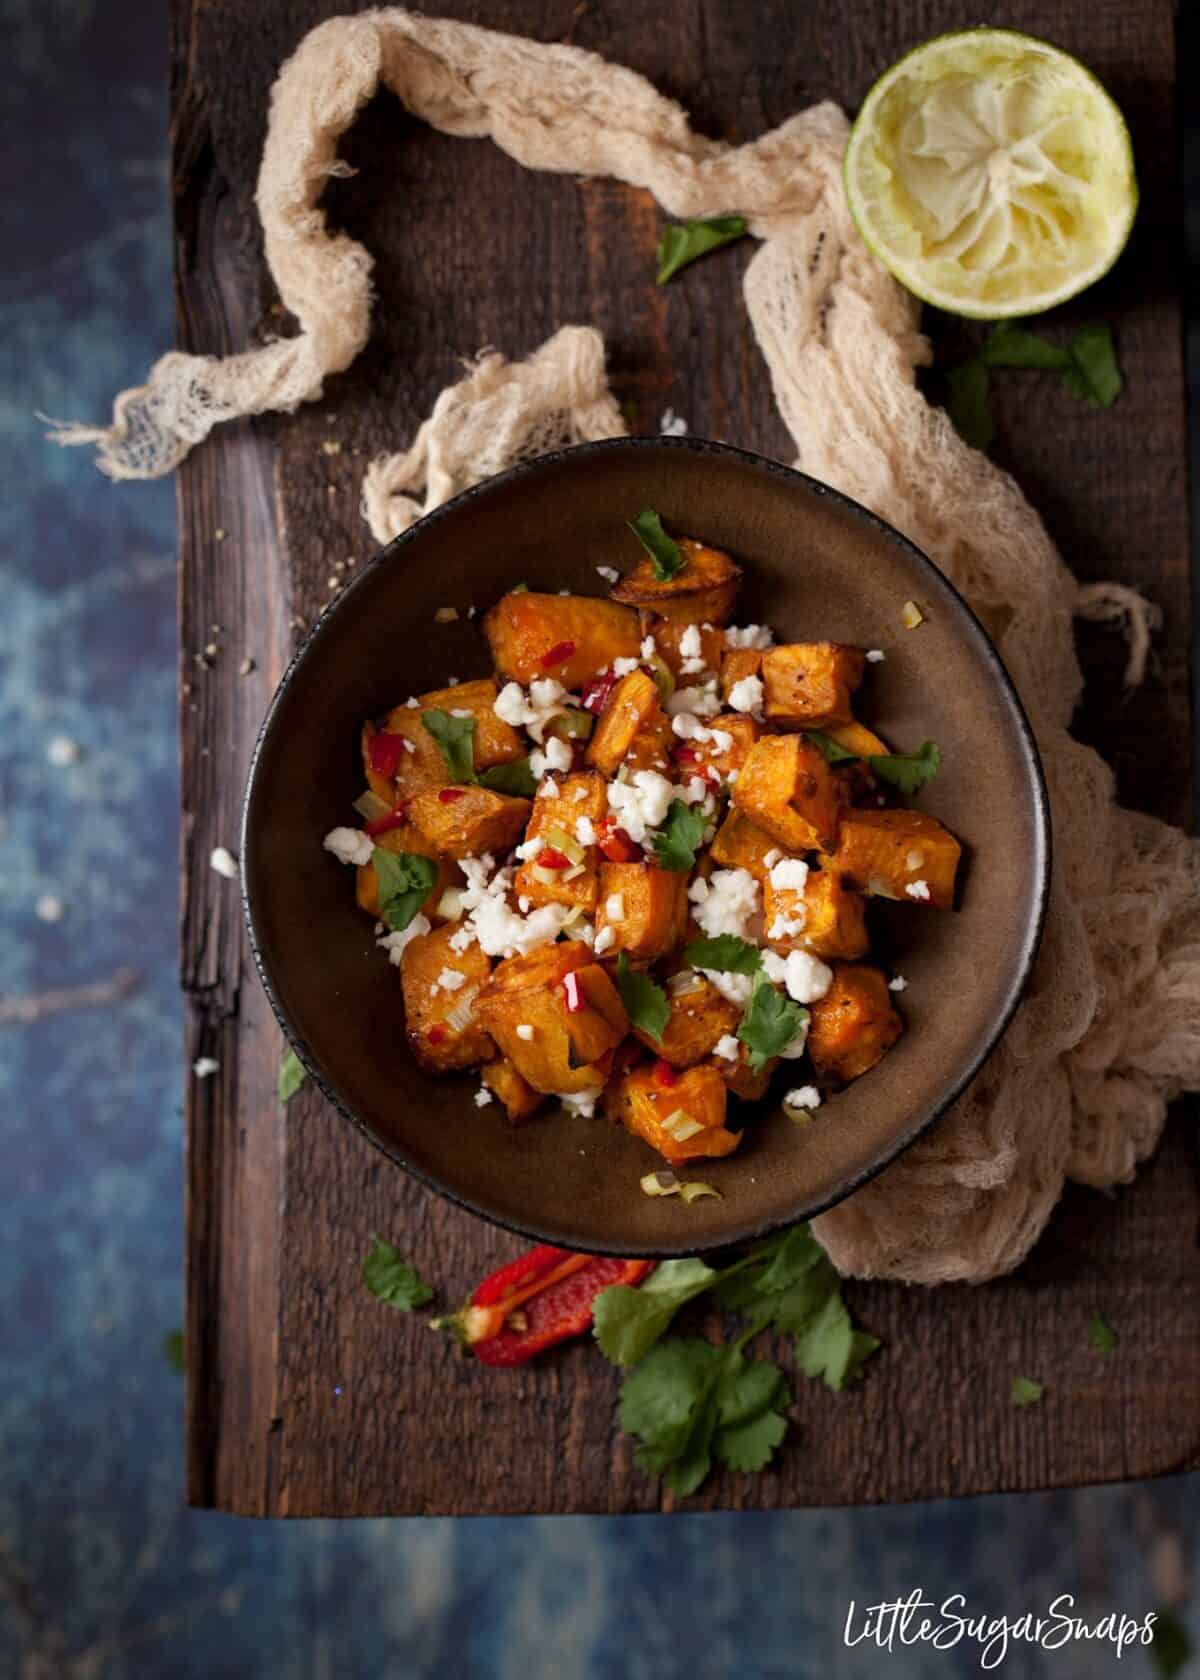 A bowl of roasted sweet potato cubes sprinkled with chilli, onion and feta